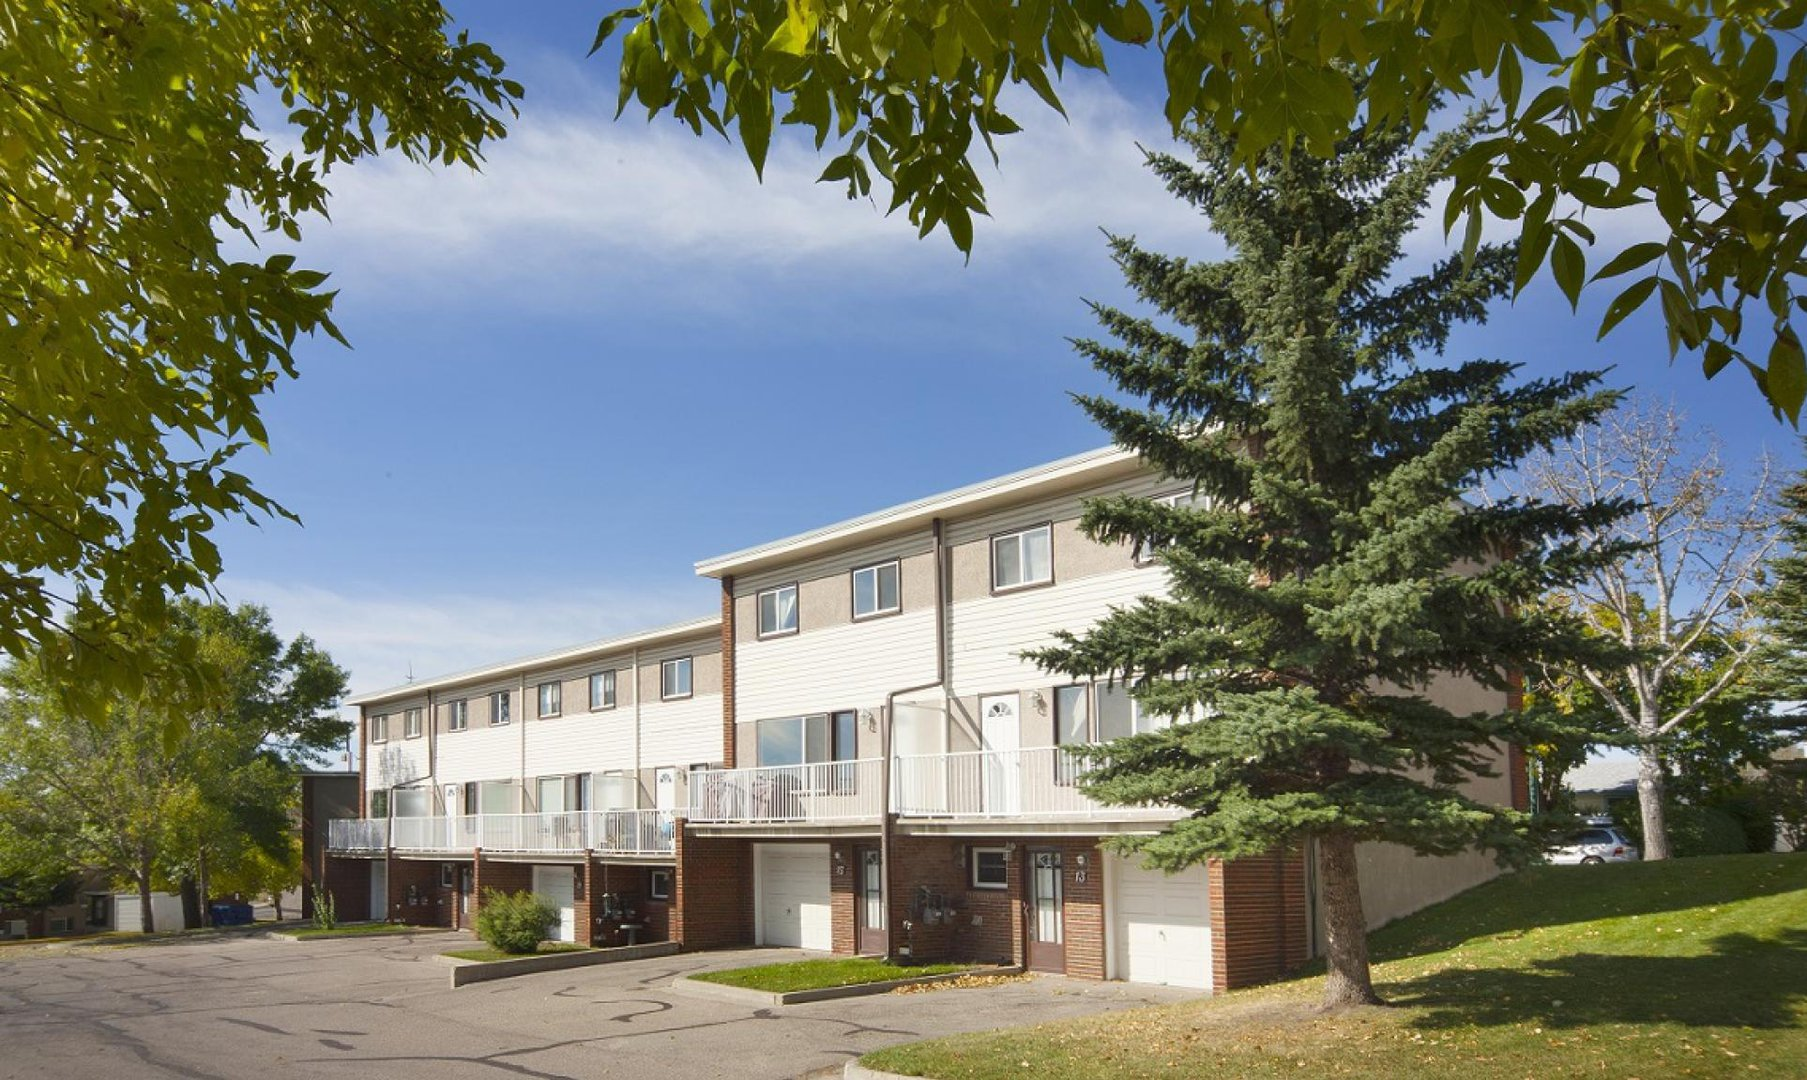 Townhouse for rent at 47 Cornell Road NW, Calgary, AB.